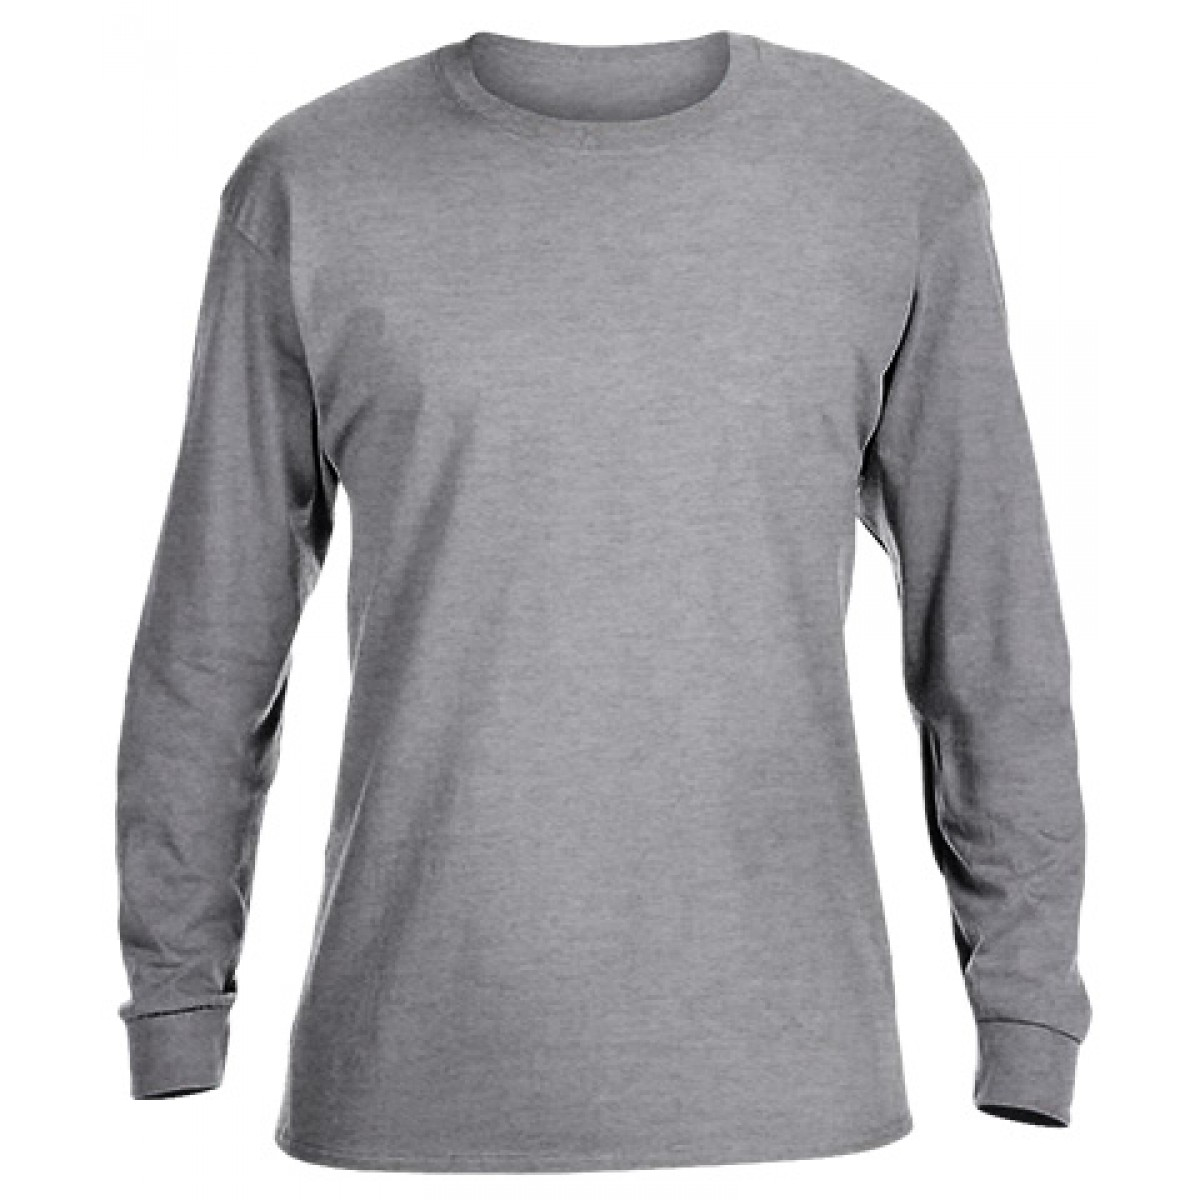 Heavy Cotton Long-Sleeve Adidas Shirt-Sports Grey-M